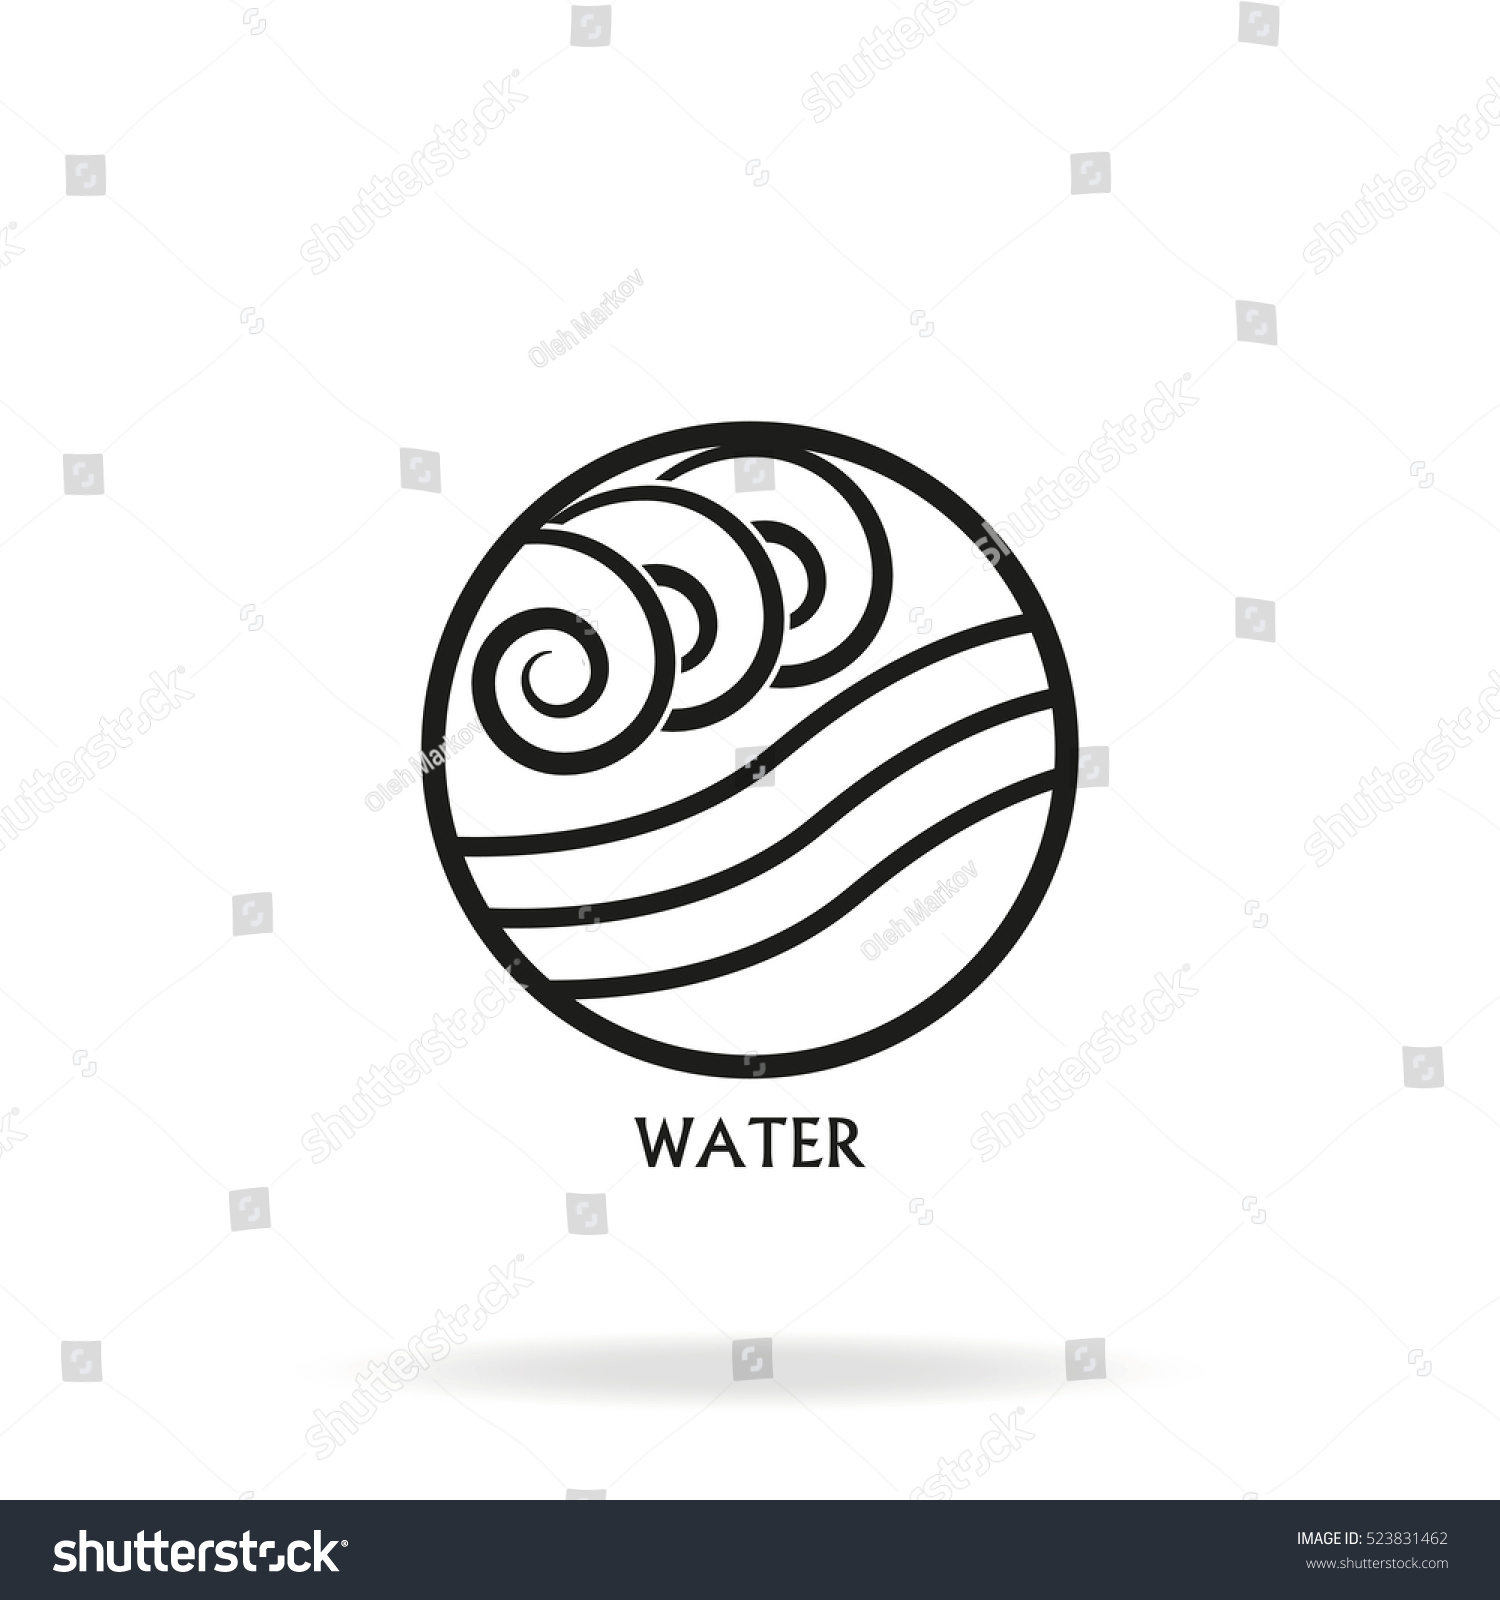 Ancient symbol water element subscribe stock vector 523831462 ancient symbol of water element with subscribe biocorpaavc Choice Image